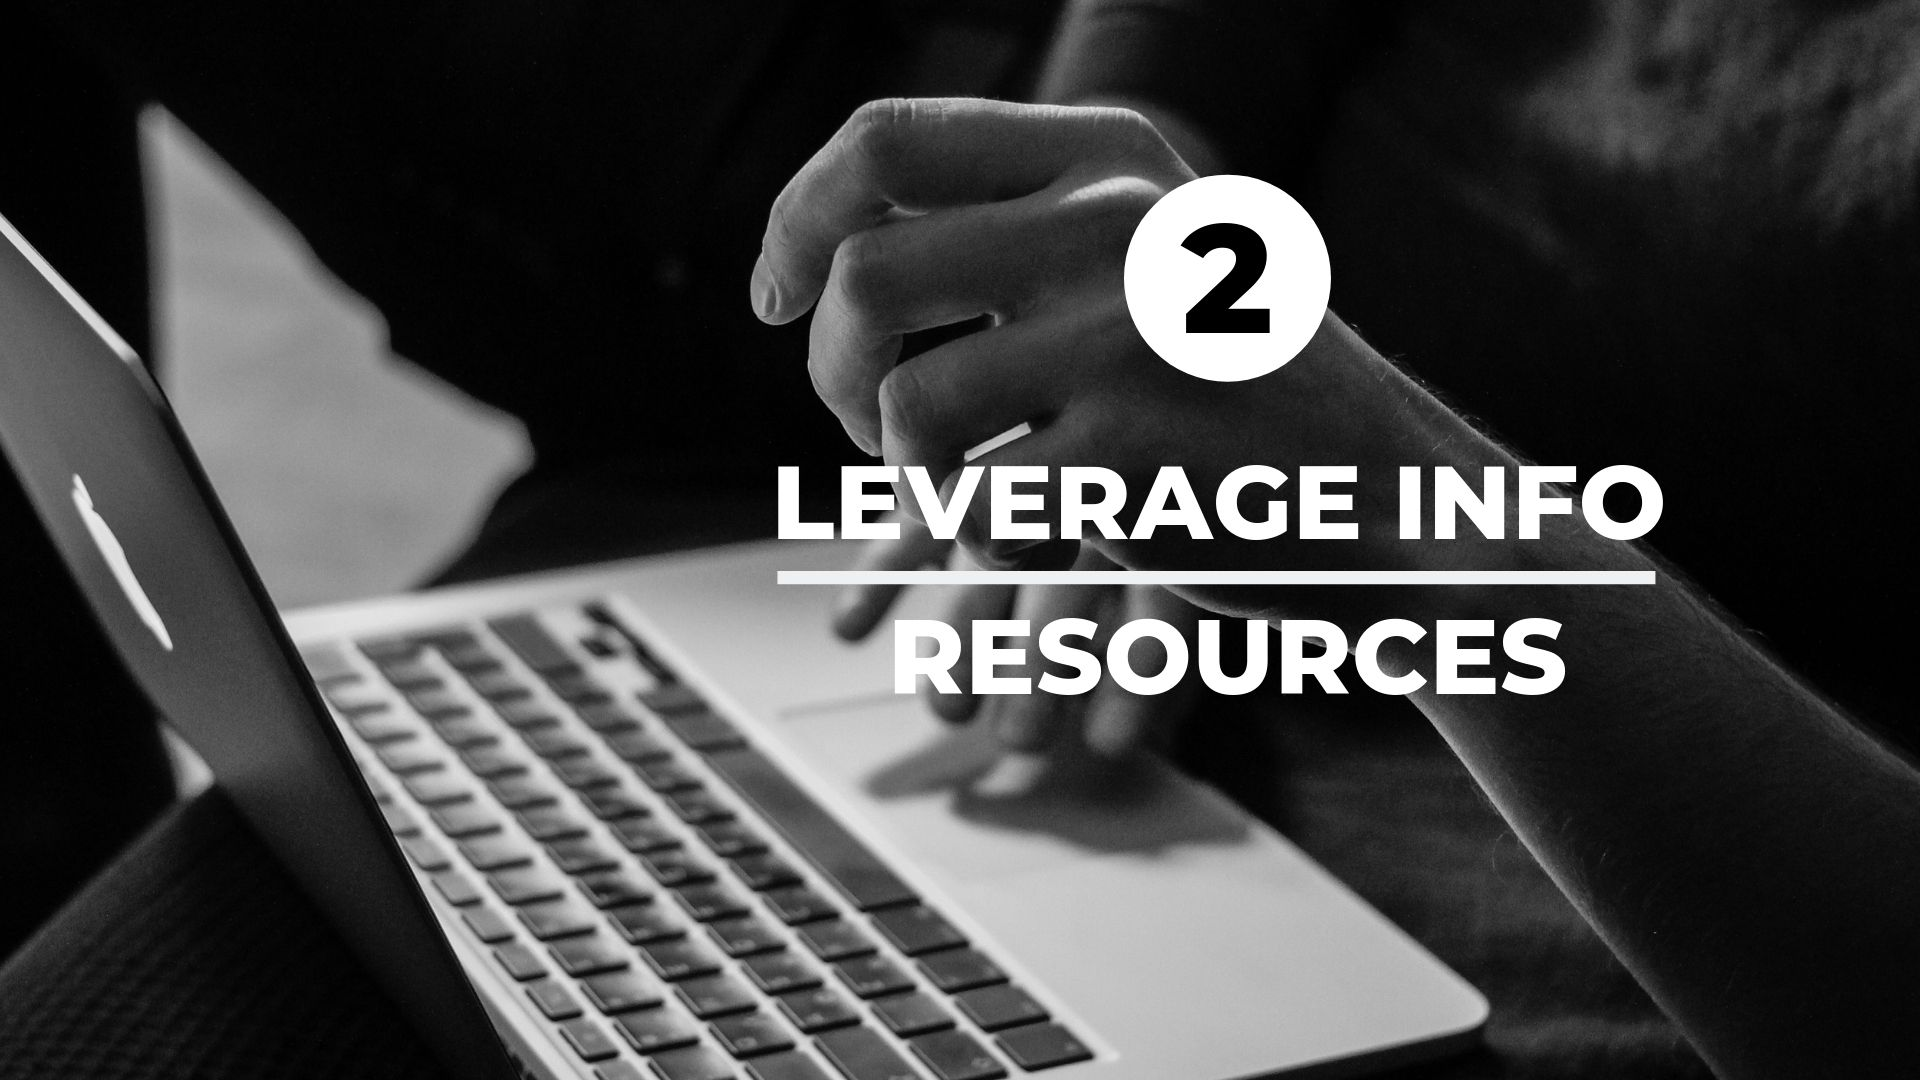 leverage info resources with woman on computer in background